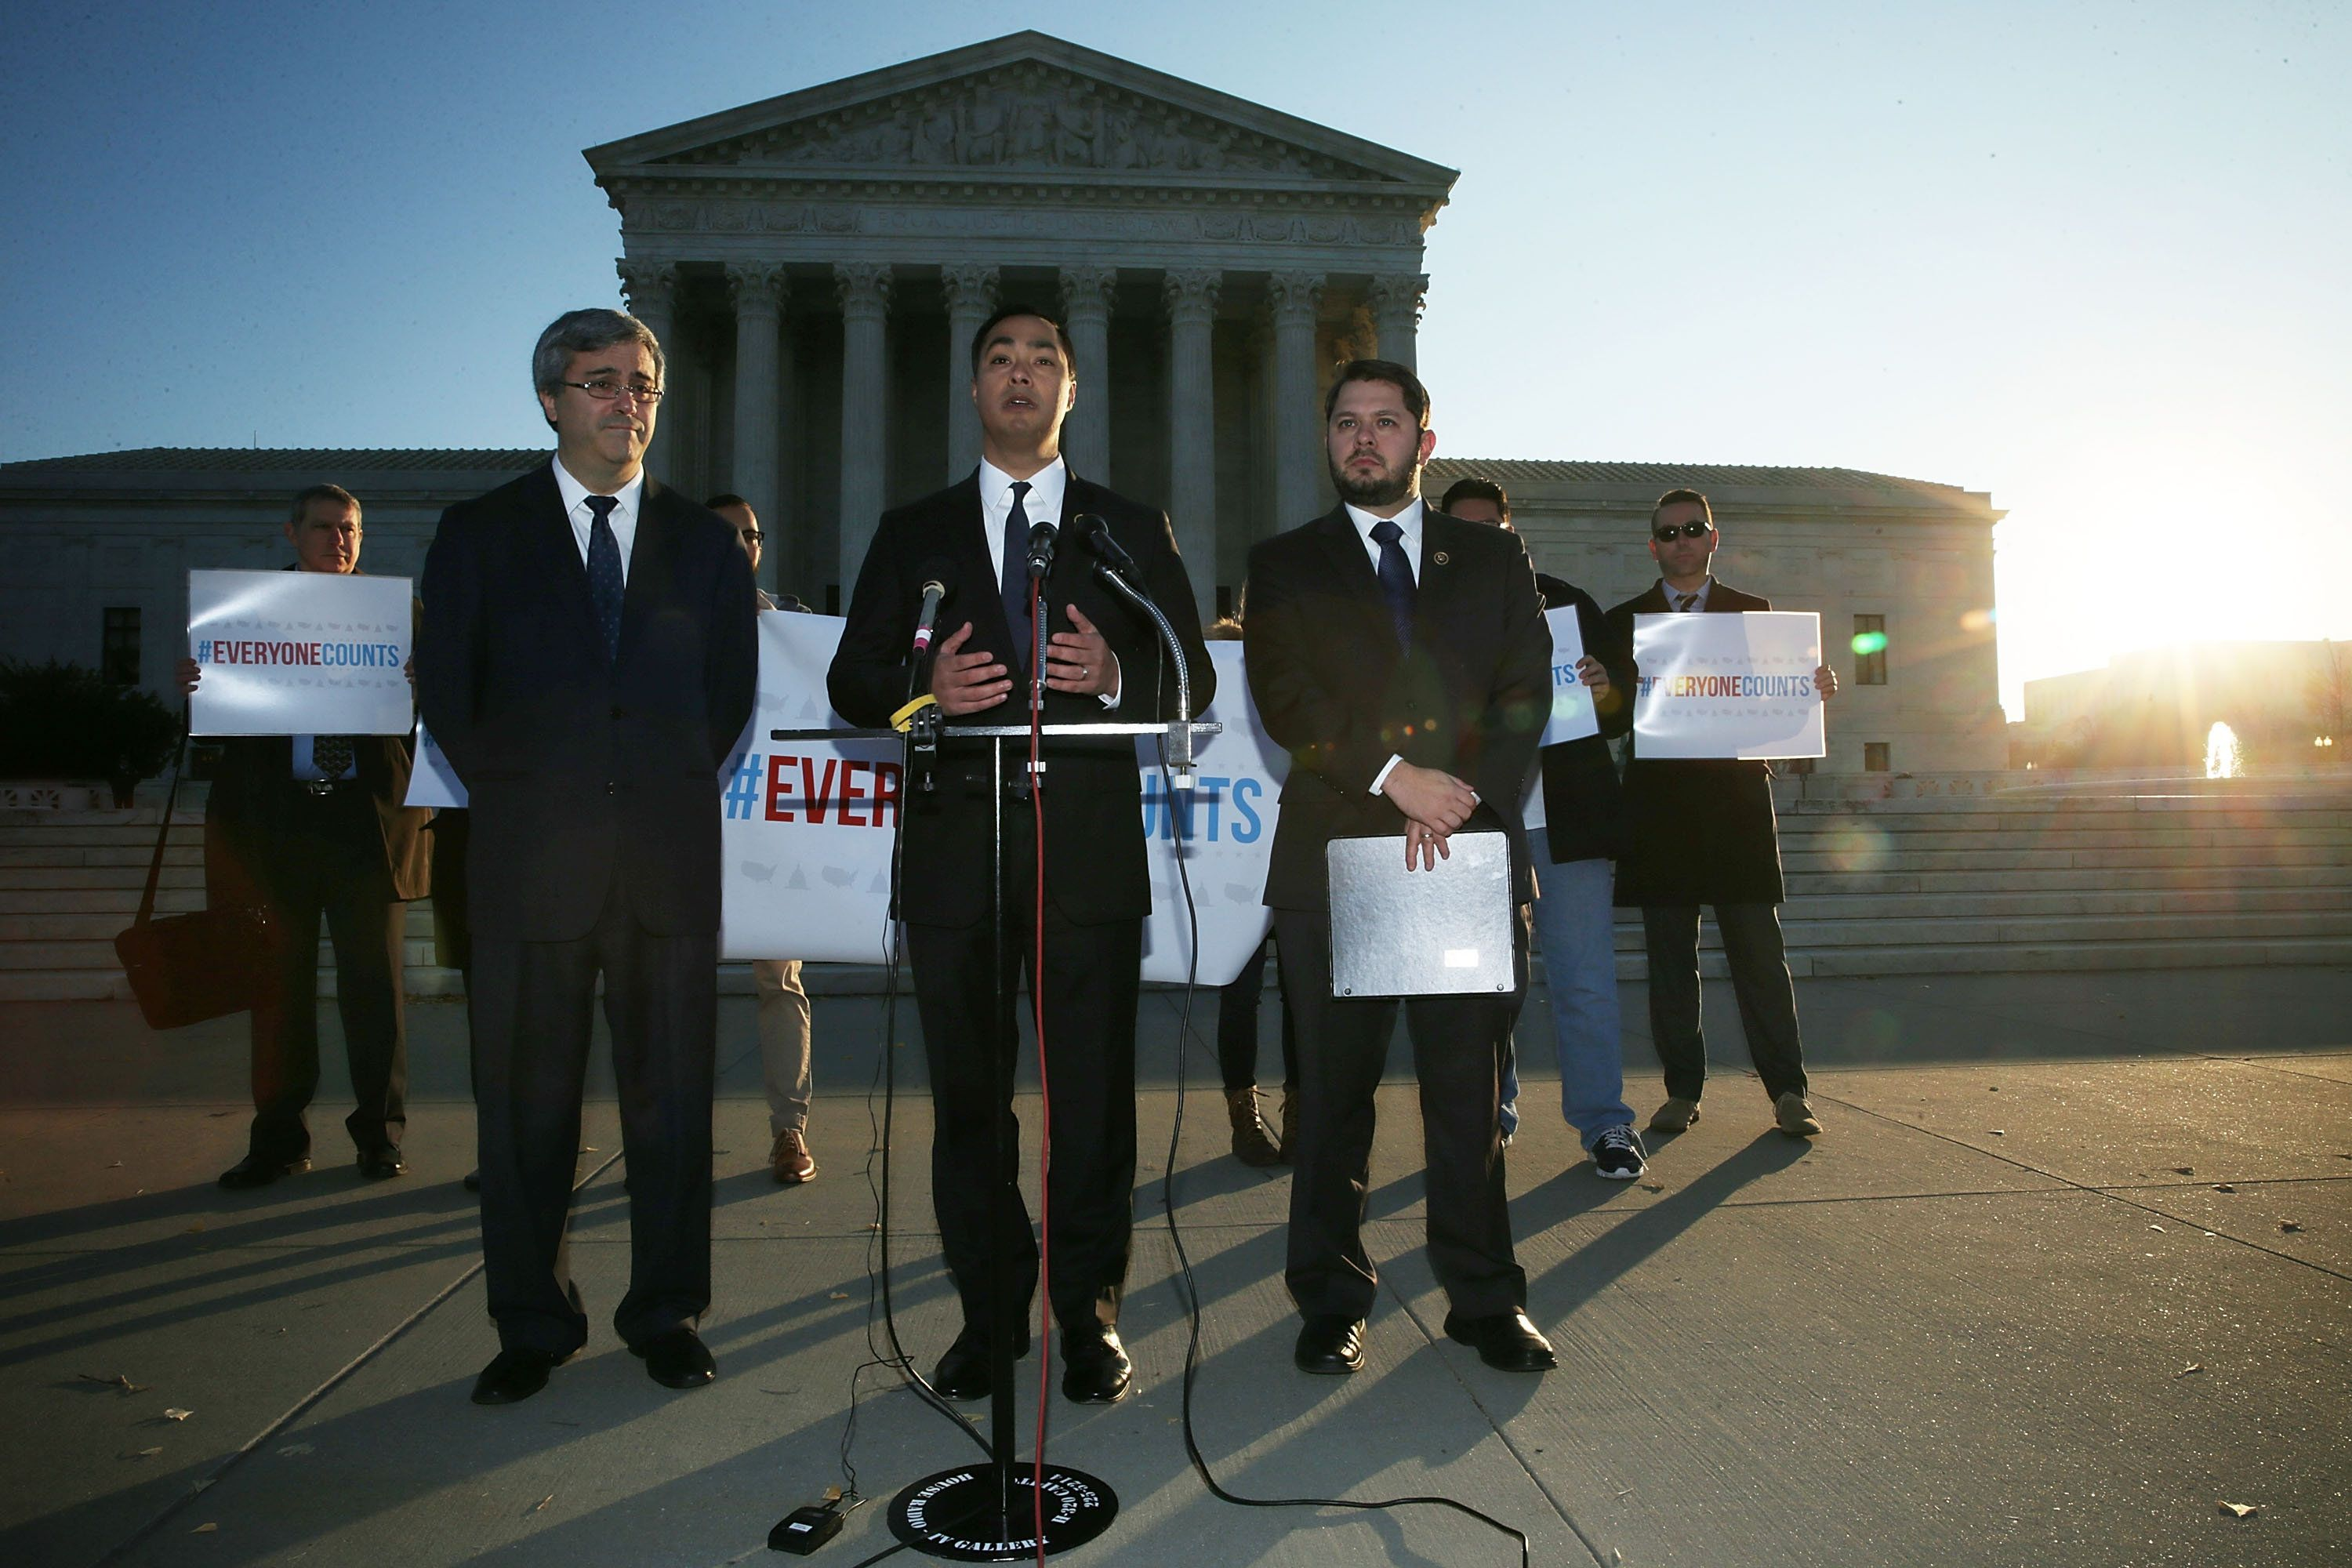 WASHINGTON, DC - DECEMBER 08:  U.S. Rep. Joaquin Castro (D-TX) (C) speaks as Rep. Ruben Gallego (D-AZ) (R) and Mexican American Legal Defense and Education Fund President and General Counsel Thomas Saenz (L) listen during a news conference in front of the Supreme Court December 8, 2015 in Washington, DC. The Congressional Hispanic Caucus held the news conference on the day the Supreme Court hears oral arguments on Evenwel v. Abbott, 'on whether voting districts should continue to be drawn by using census population data, which include noncitizen immigrants, or whether the system should be changed to count only citizens eligible to vote, as conservative challengers are seeking.'  (Photo by Alex Wong/Getty Images)